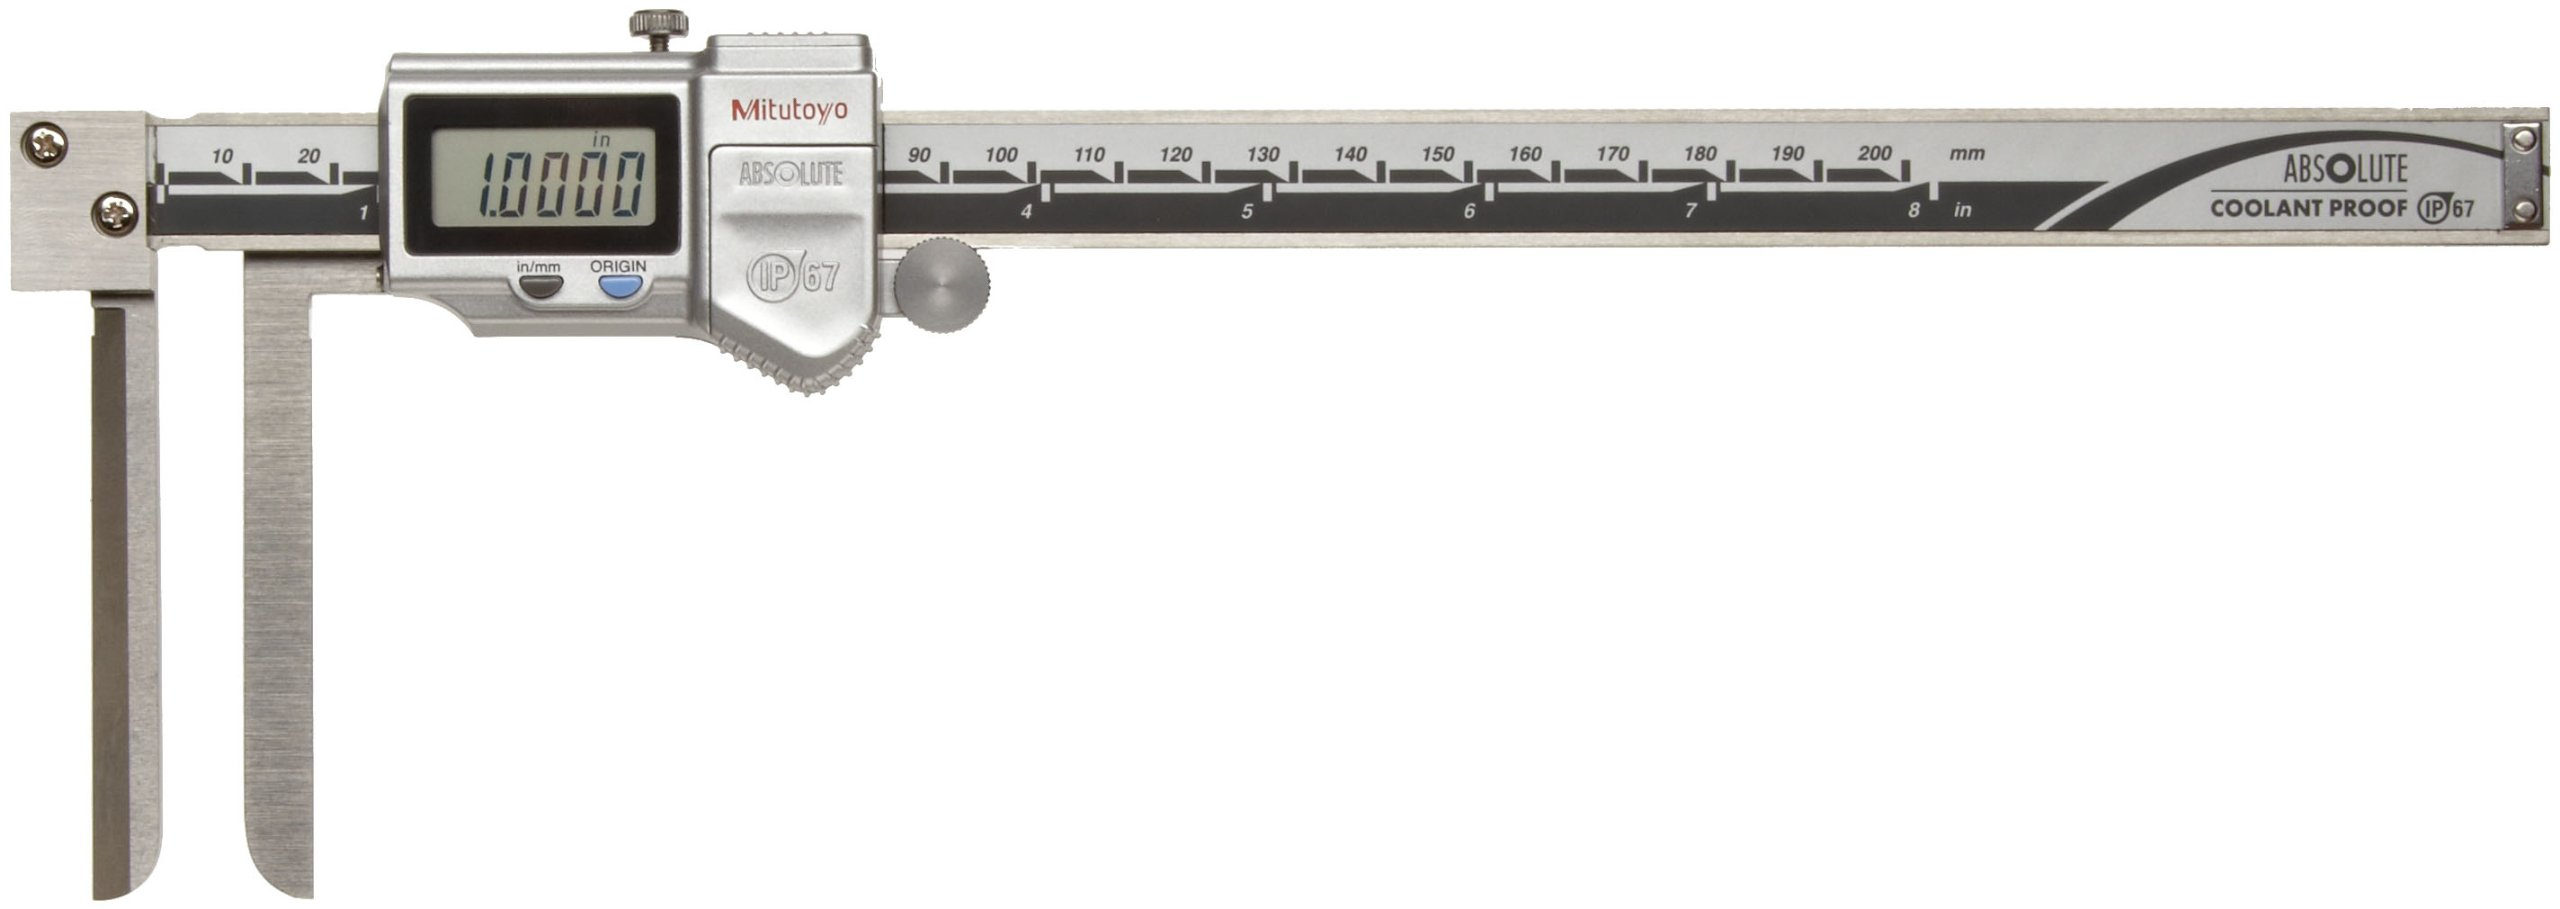 Mitutoyo ABSOLUTE 573-742 Digital Caliper, Stainless Steel, Battery Powered, Inch/Metric, Knife Edge, Long Jaw, 0-8'' Range, +/-0.002'' Accuracy, 0.0005'' Resolution, Meets IP67 Specifications